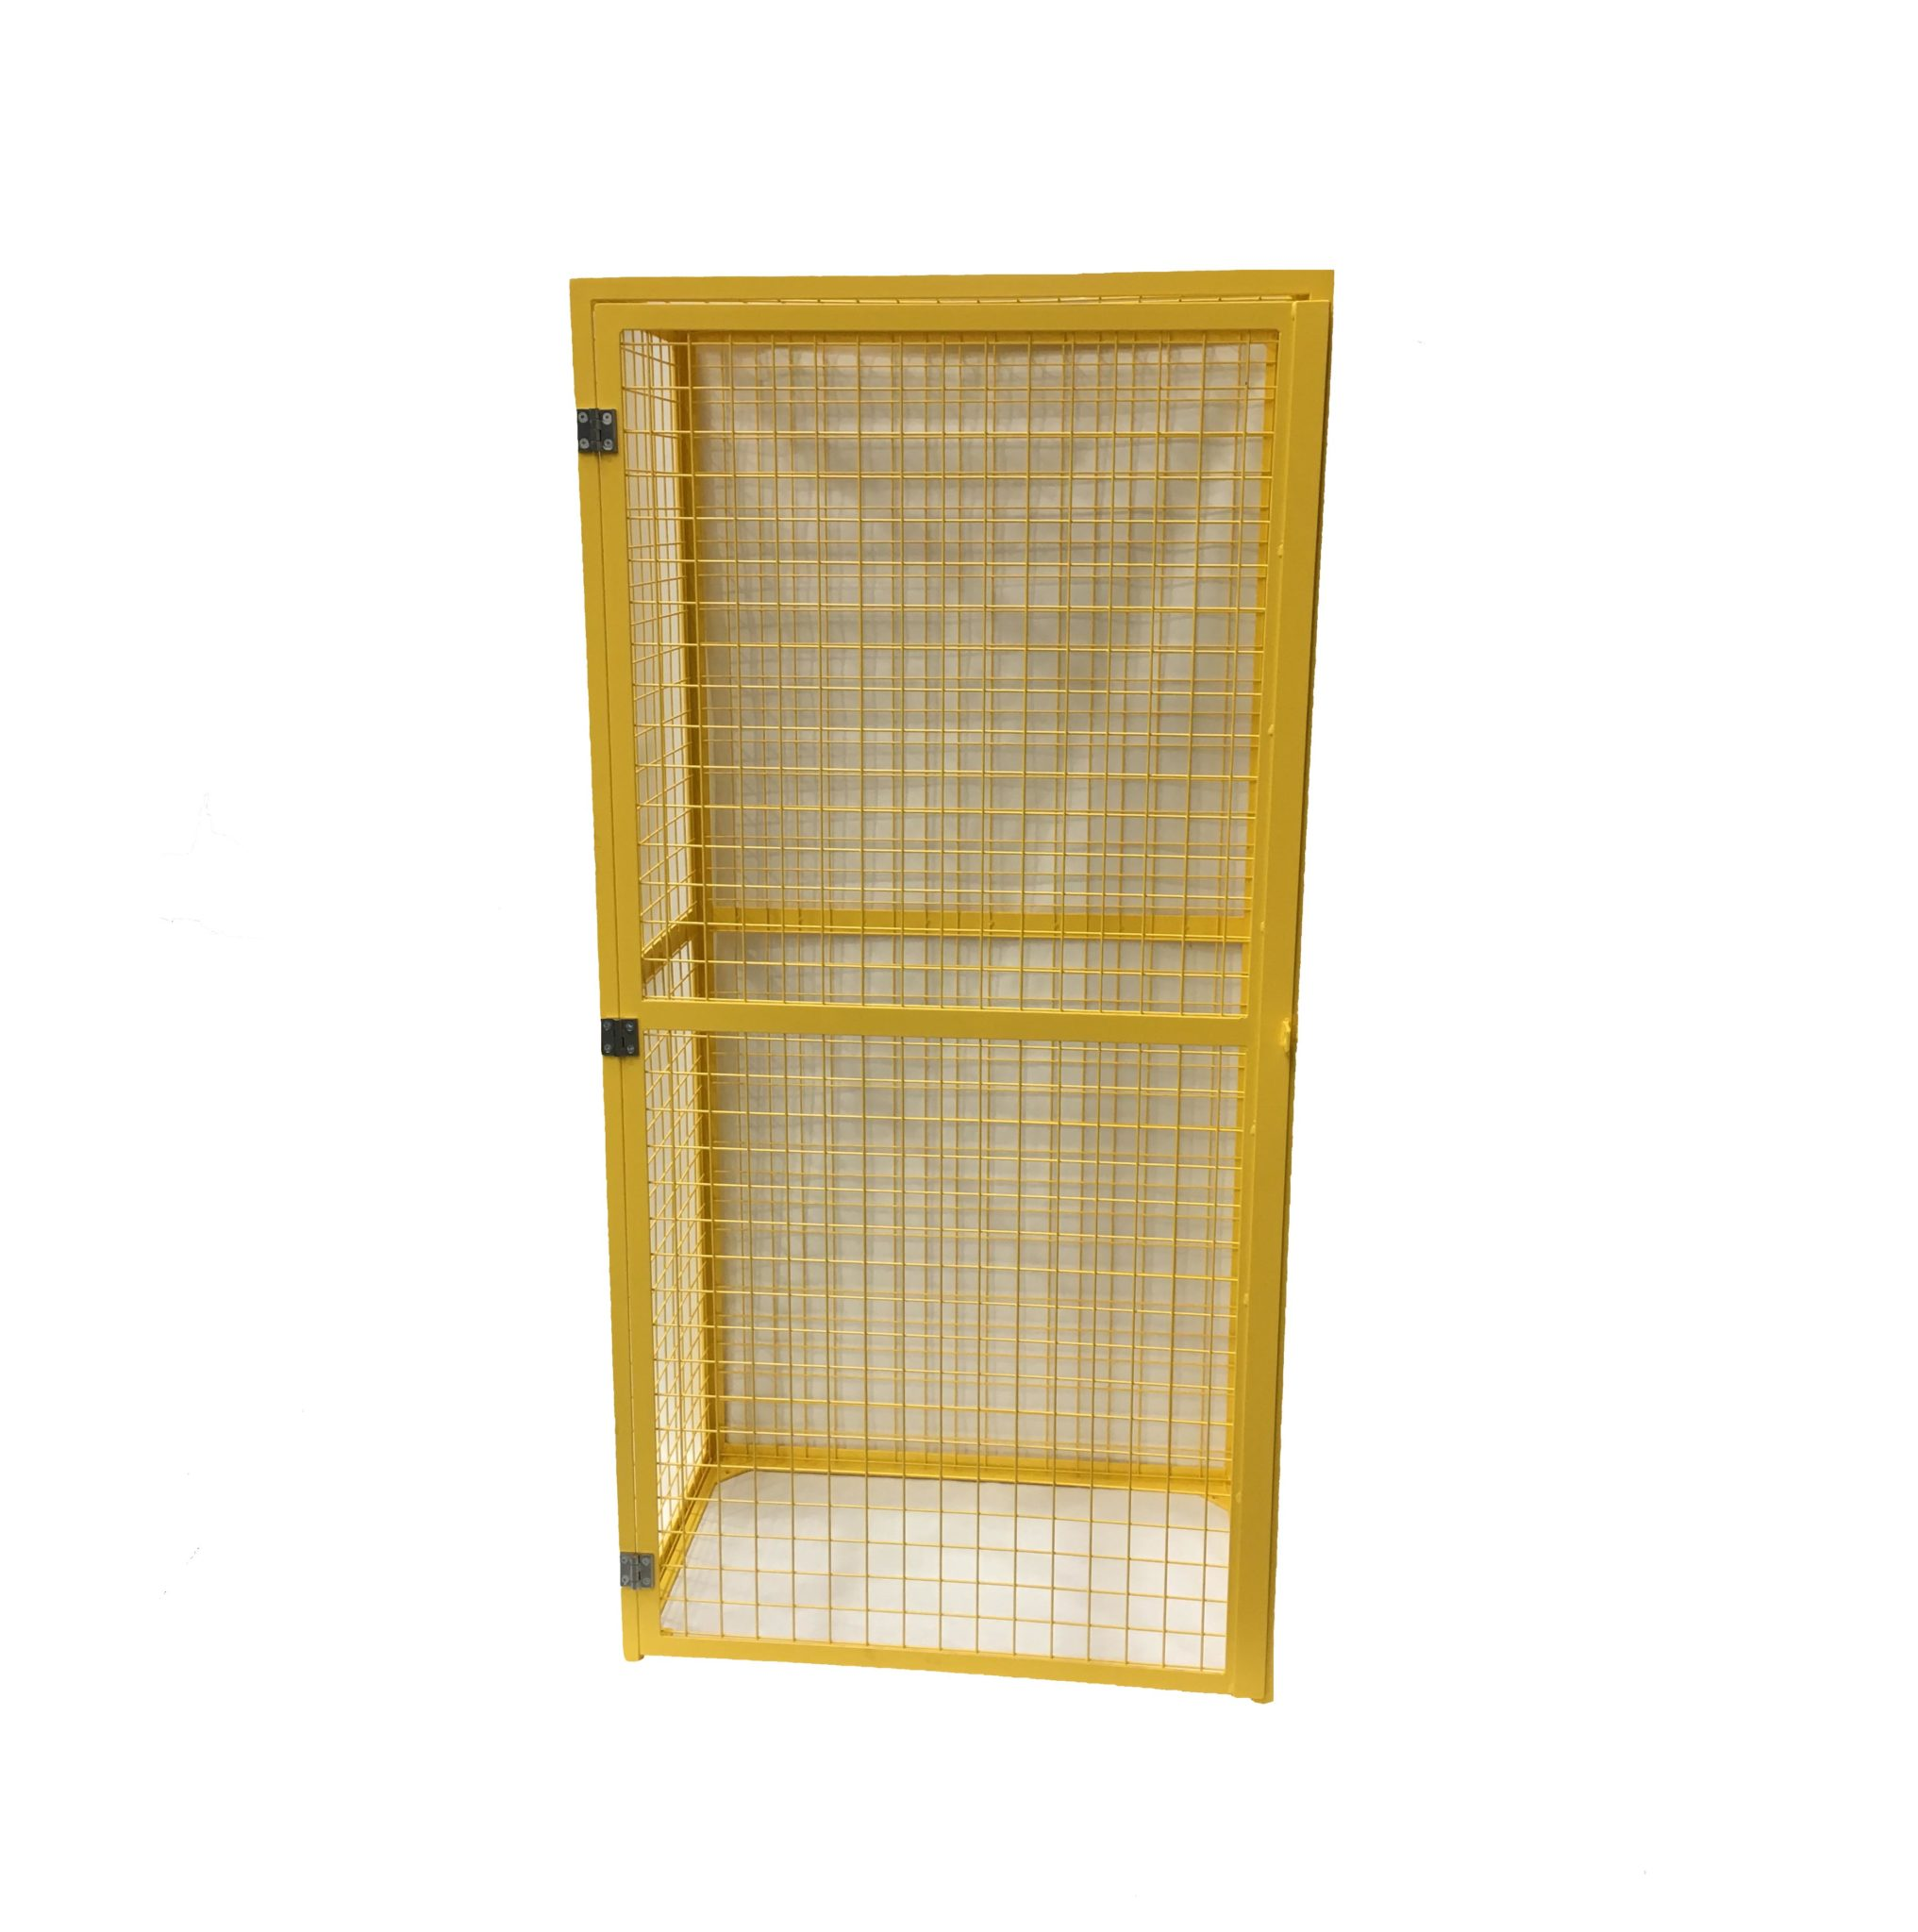 Cage Industrial and Commercial Square web